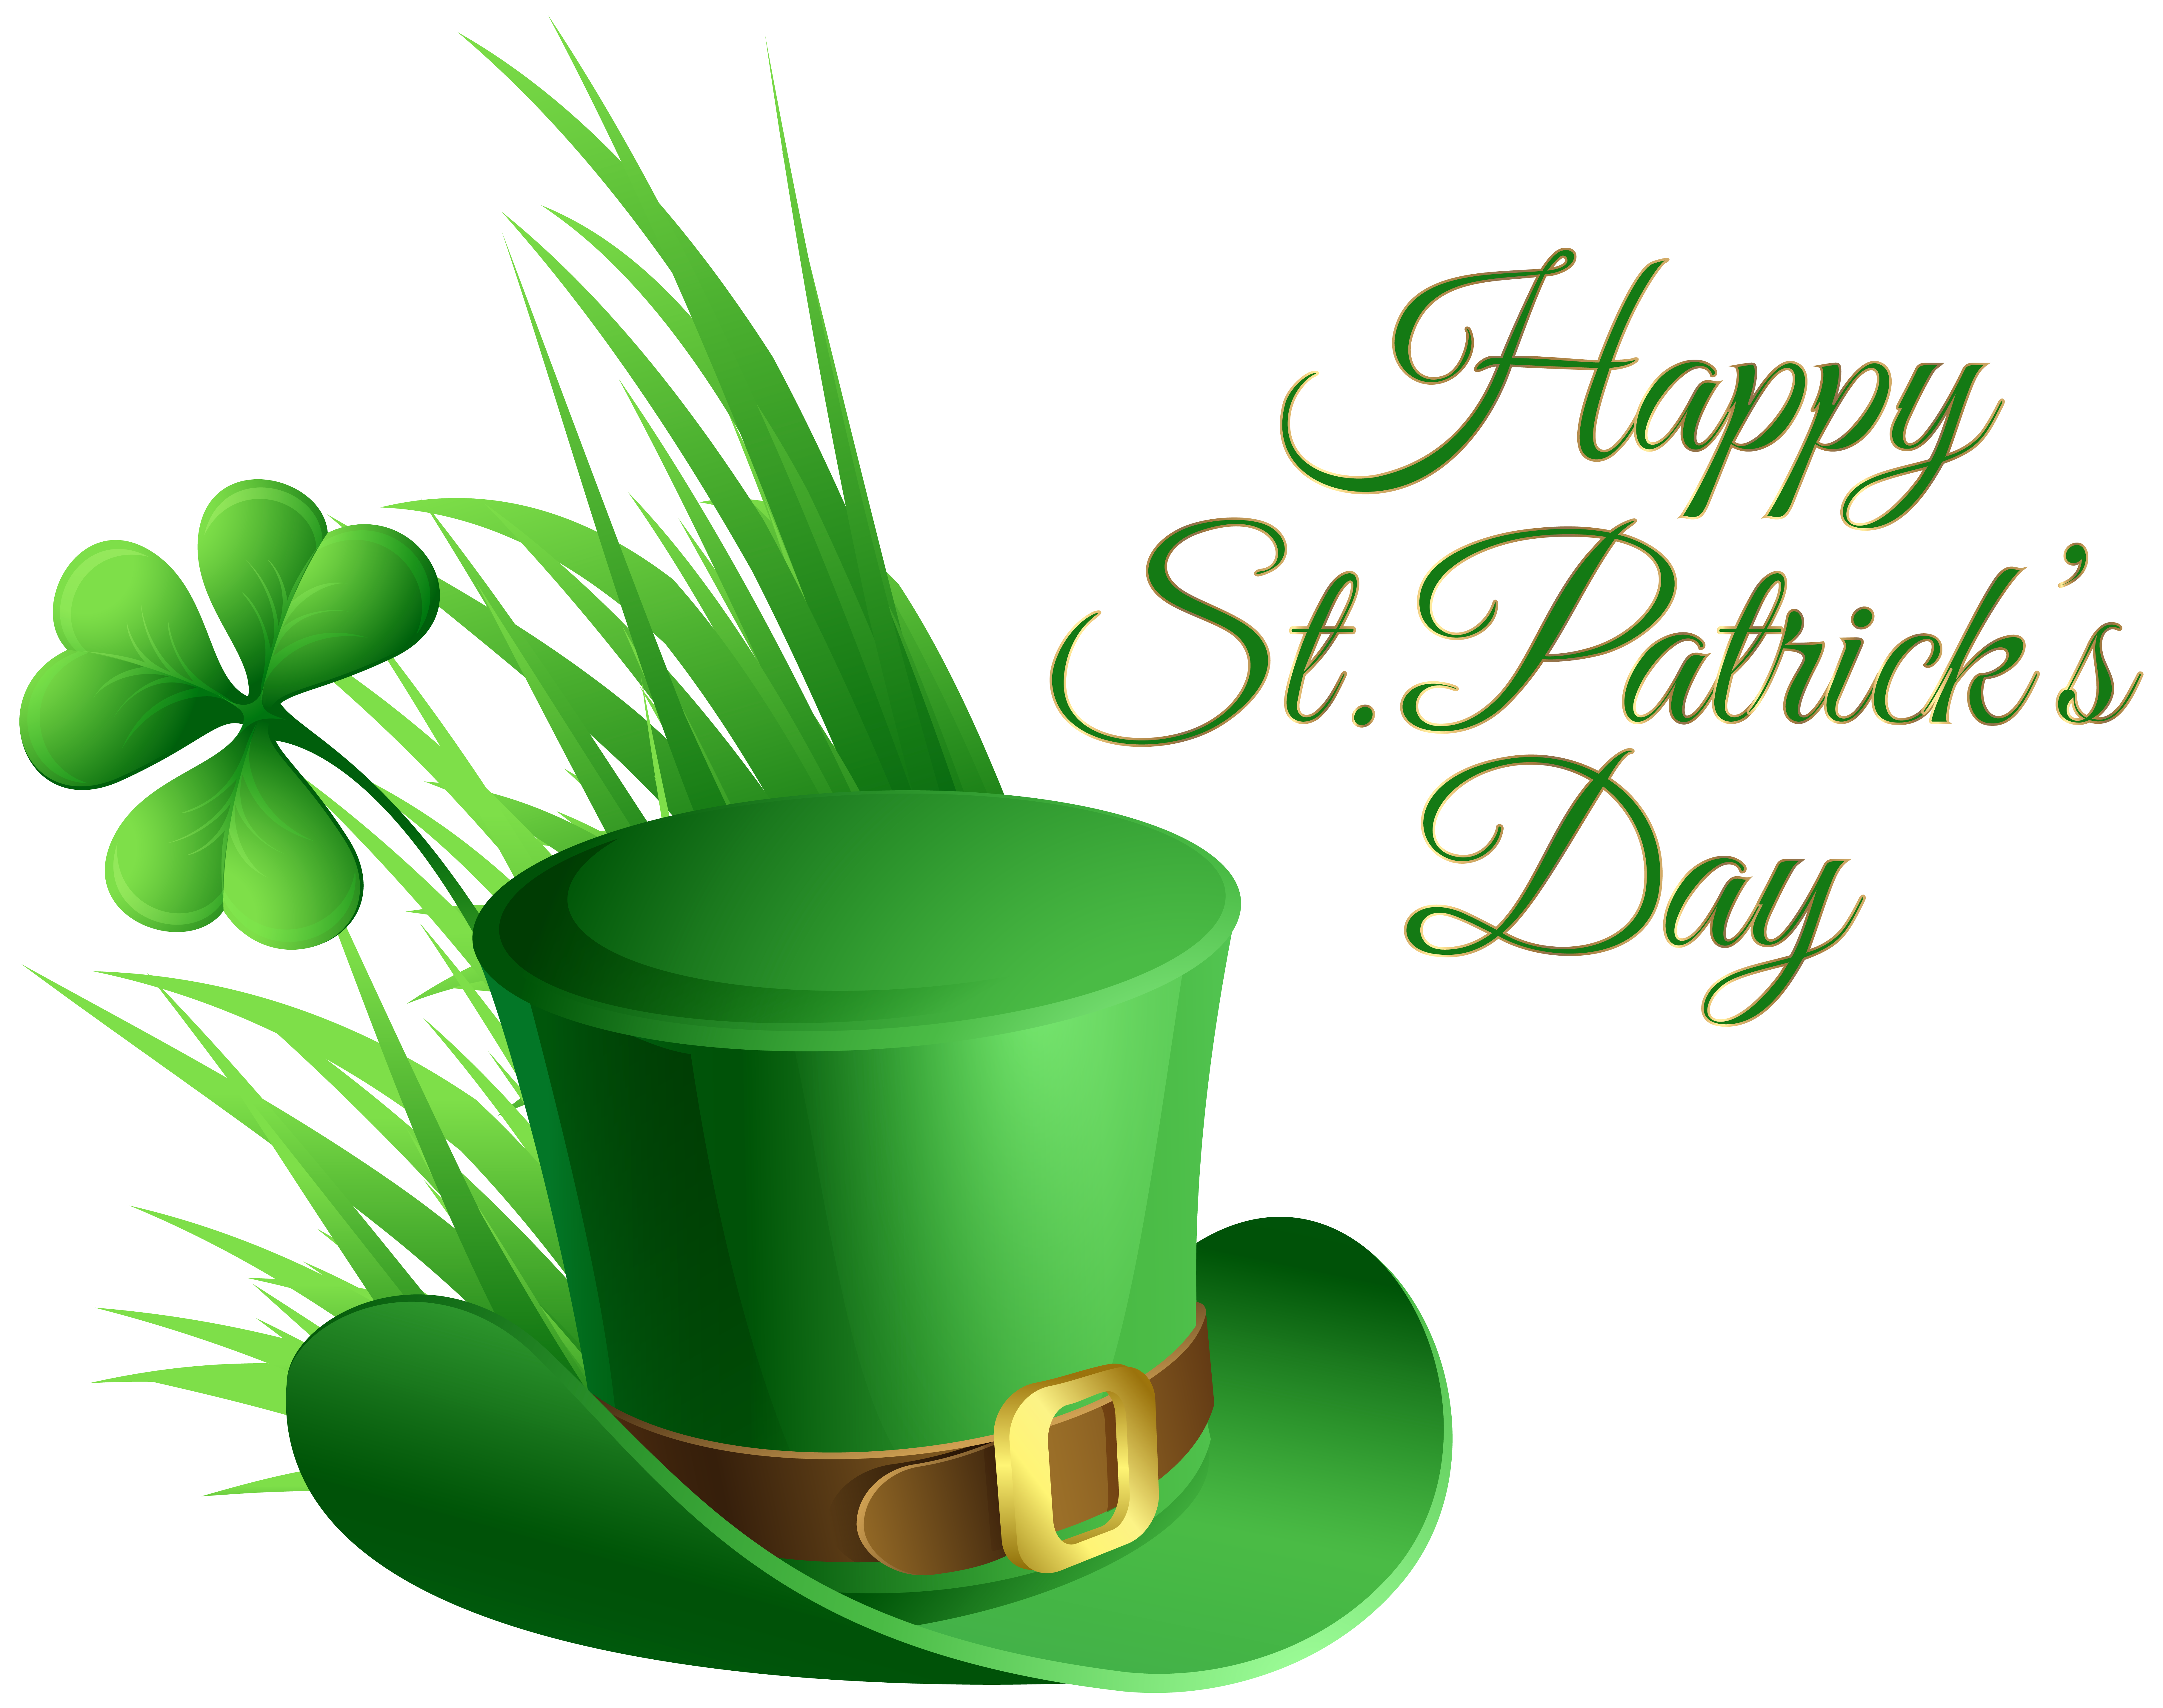 Clipart free st patricks day. Hat and shamrock transparent